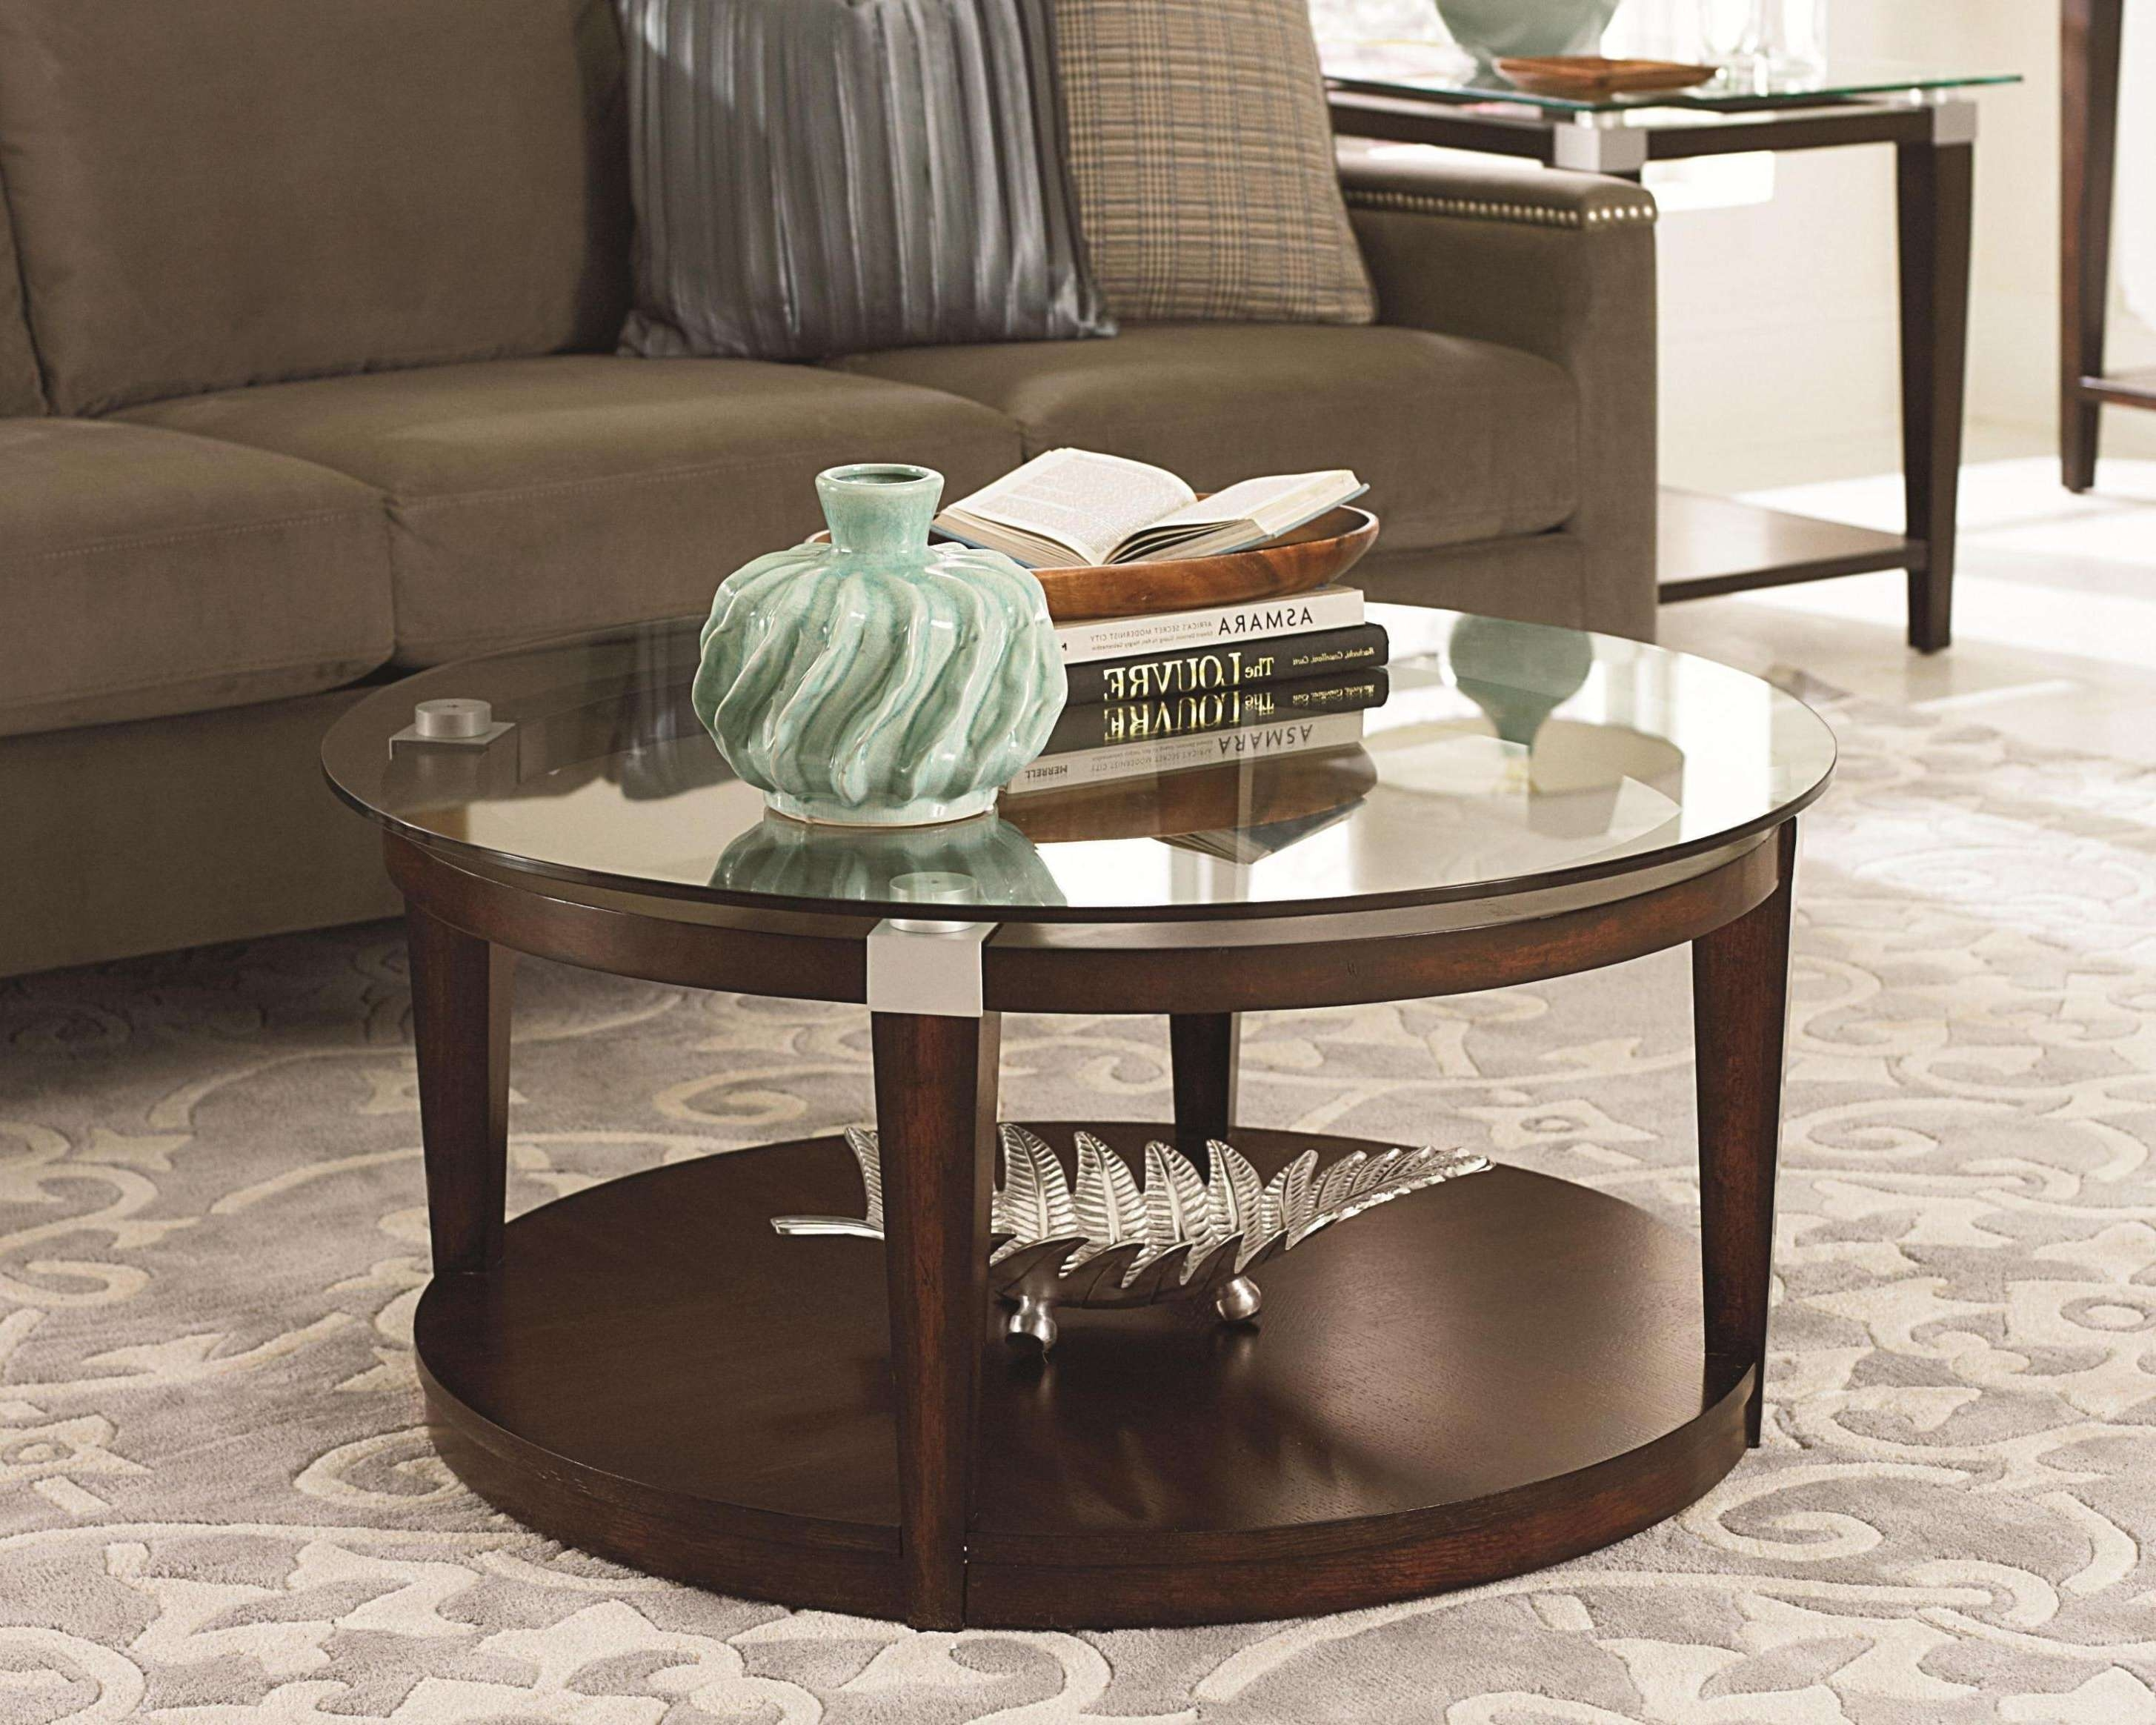 Coffee Table Interesting Round Glass Coffee Table Design Ideas Pertaining To Most Up To Date Circular Glass Coffee Tables (View 2 of 20)